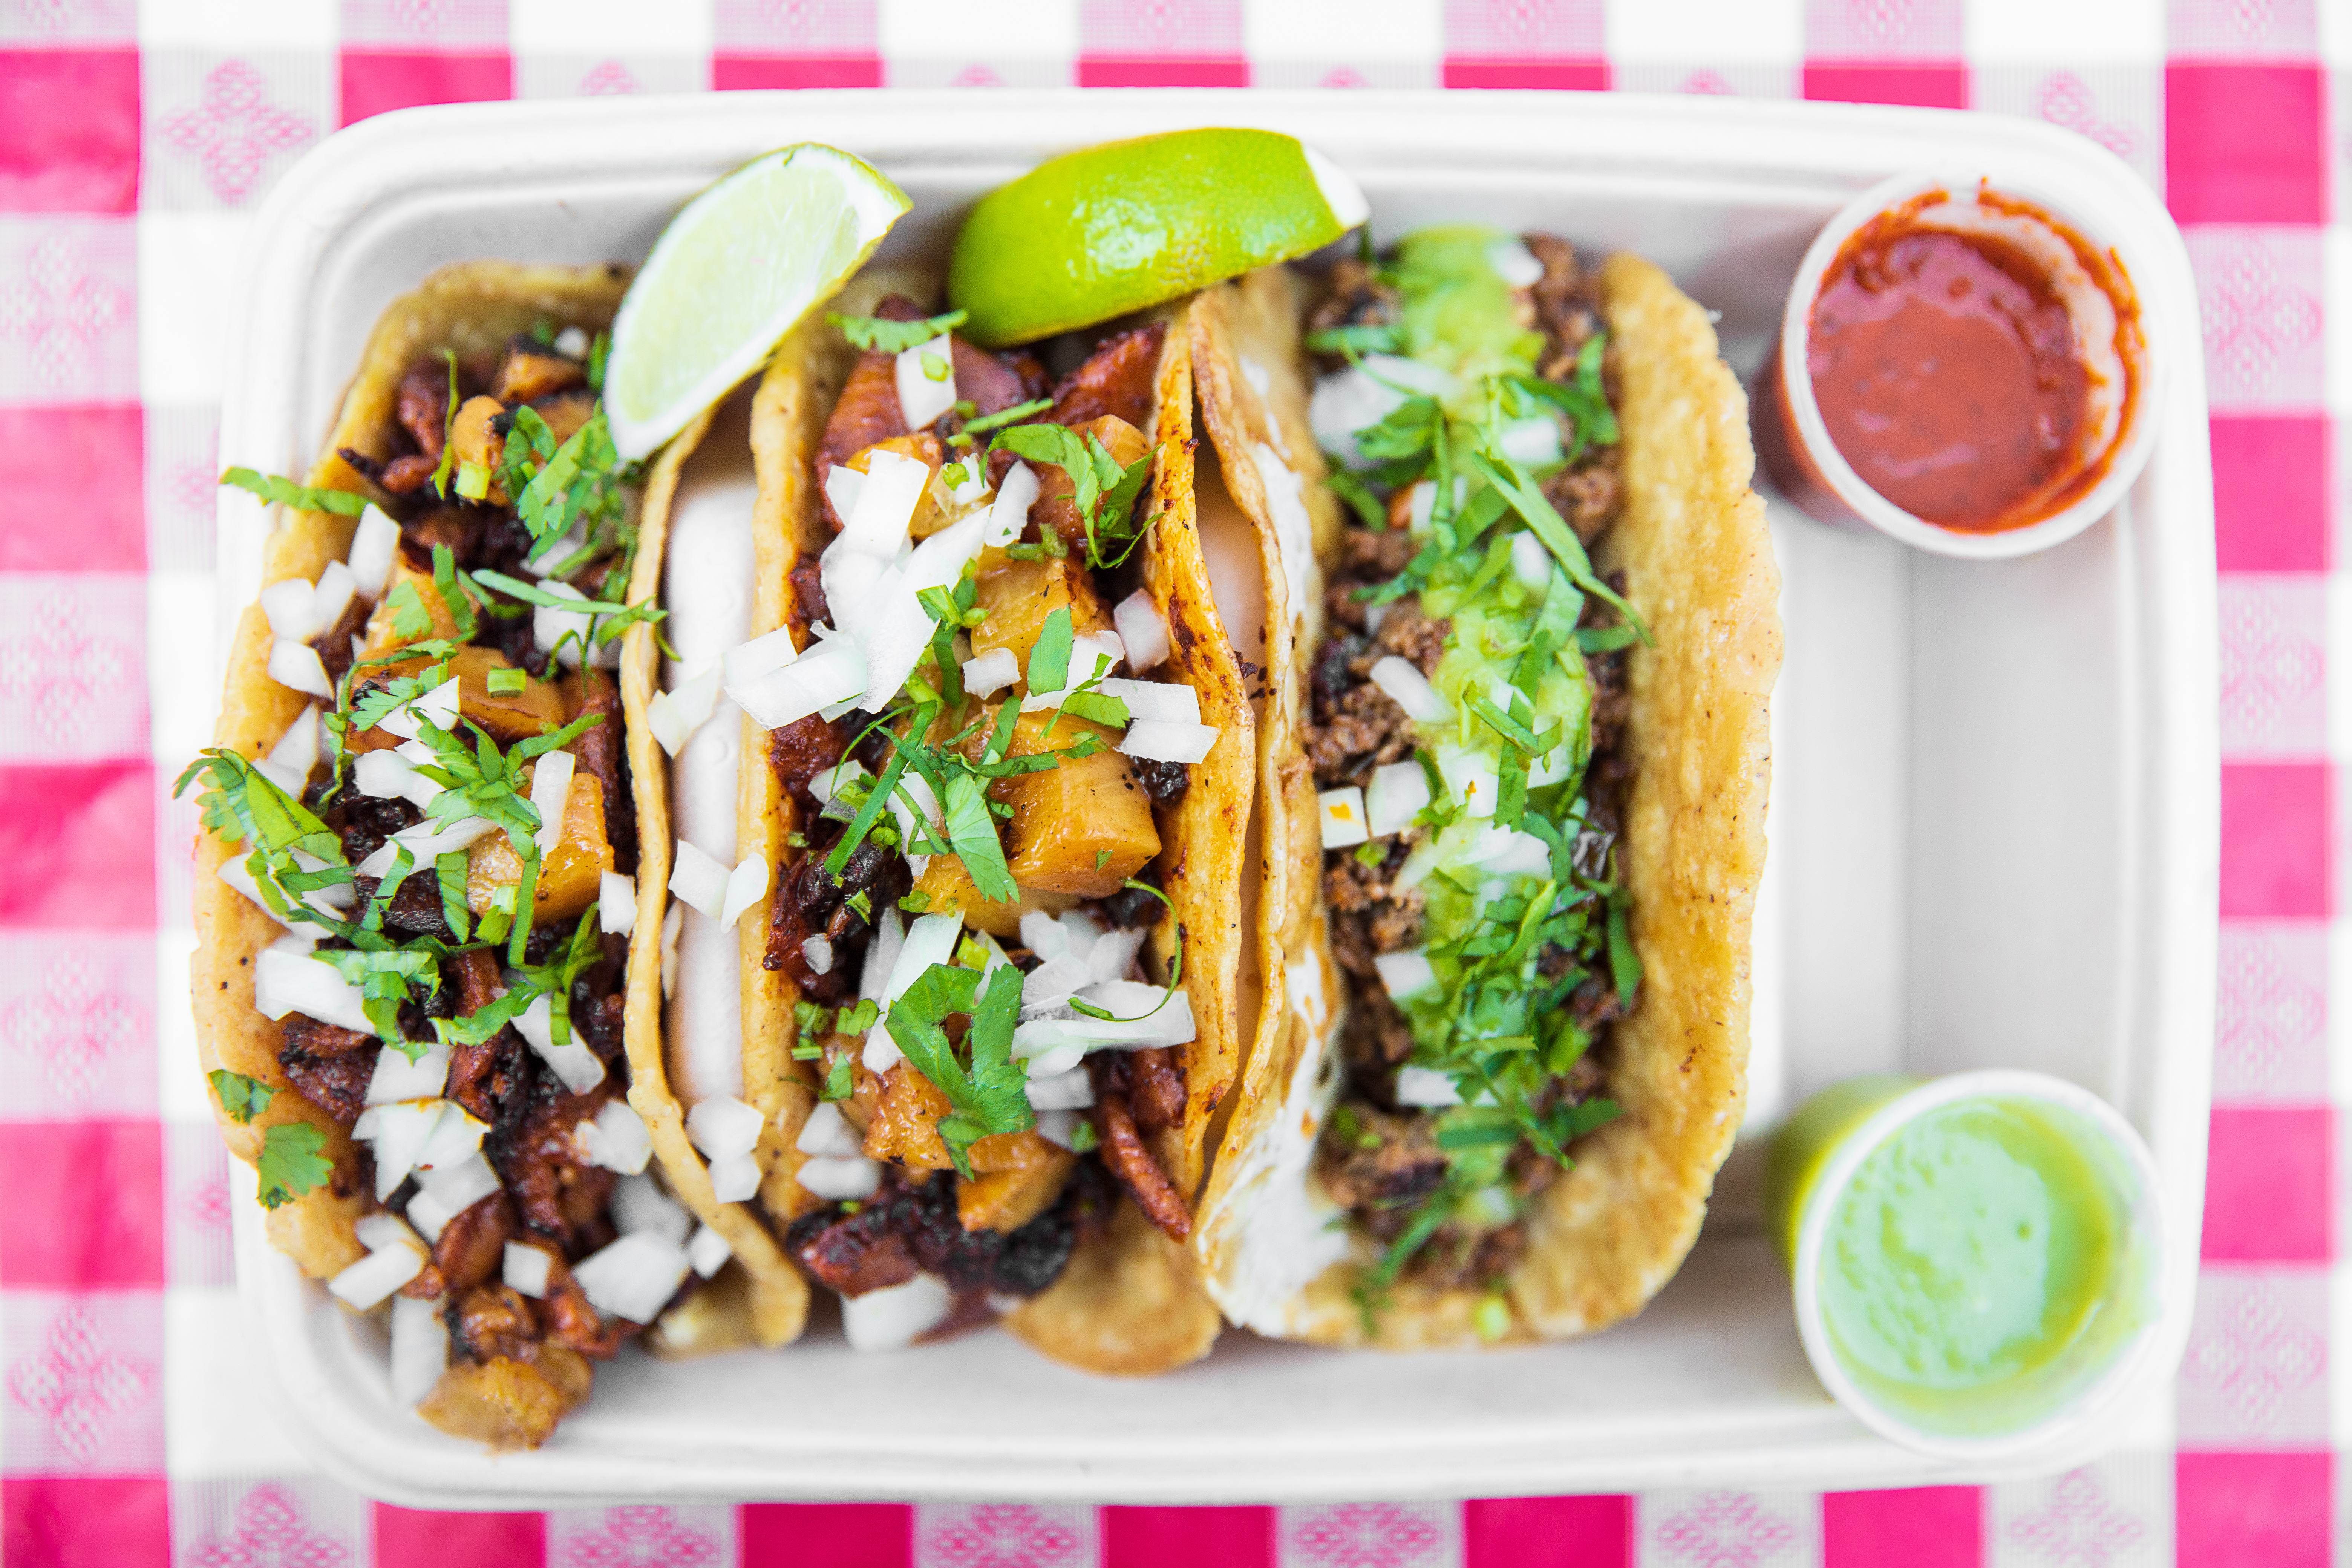 A tray of three tacos with salsas.